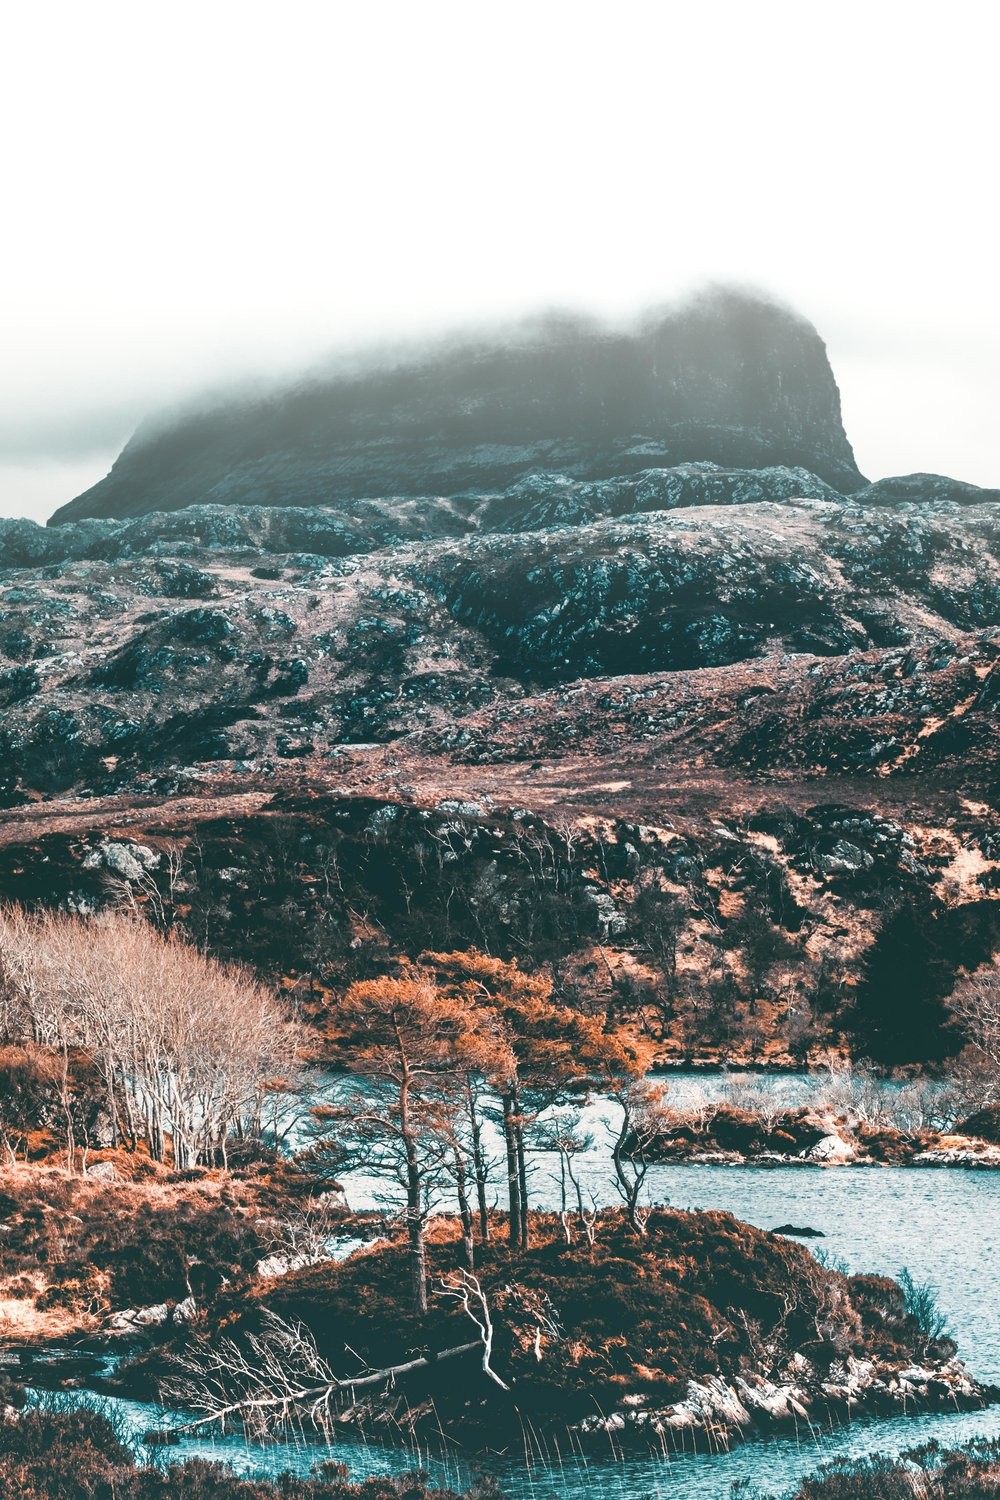 Day 4 - Suilven